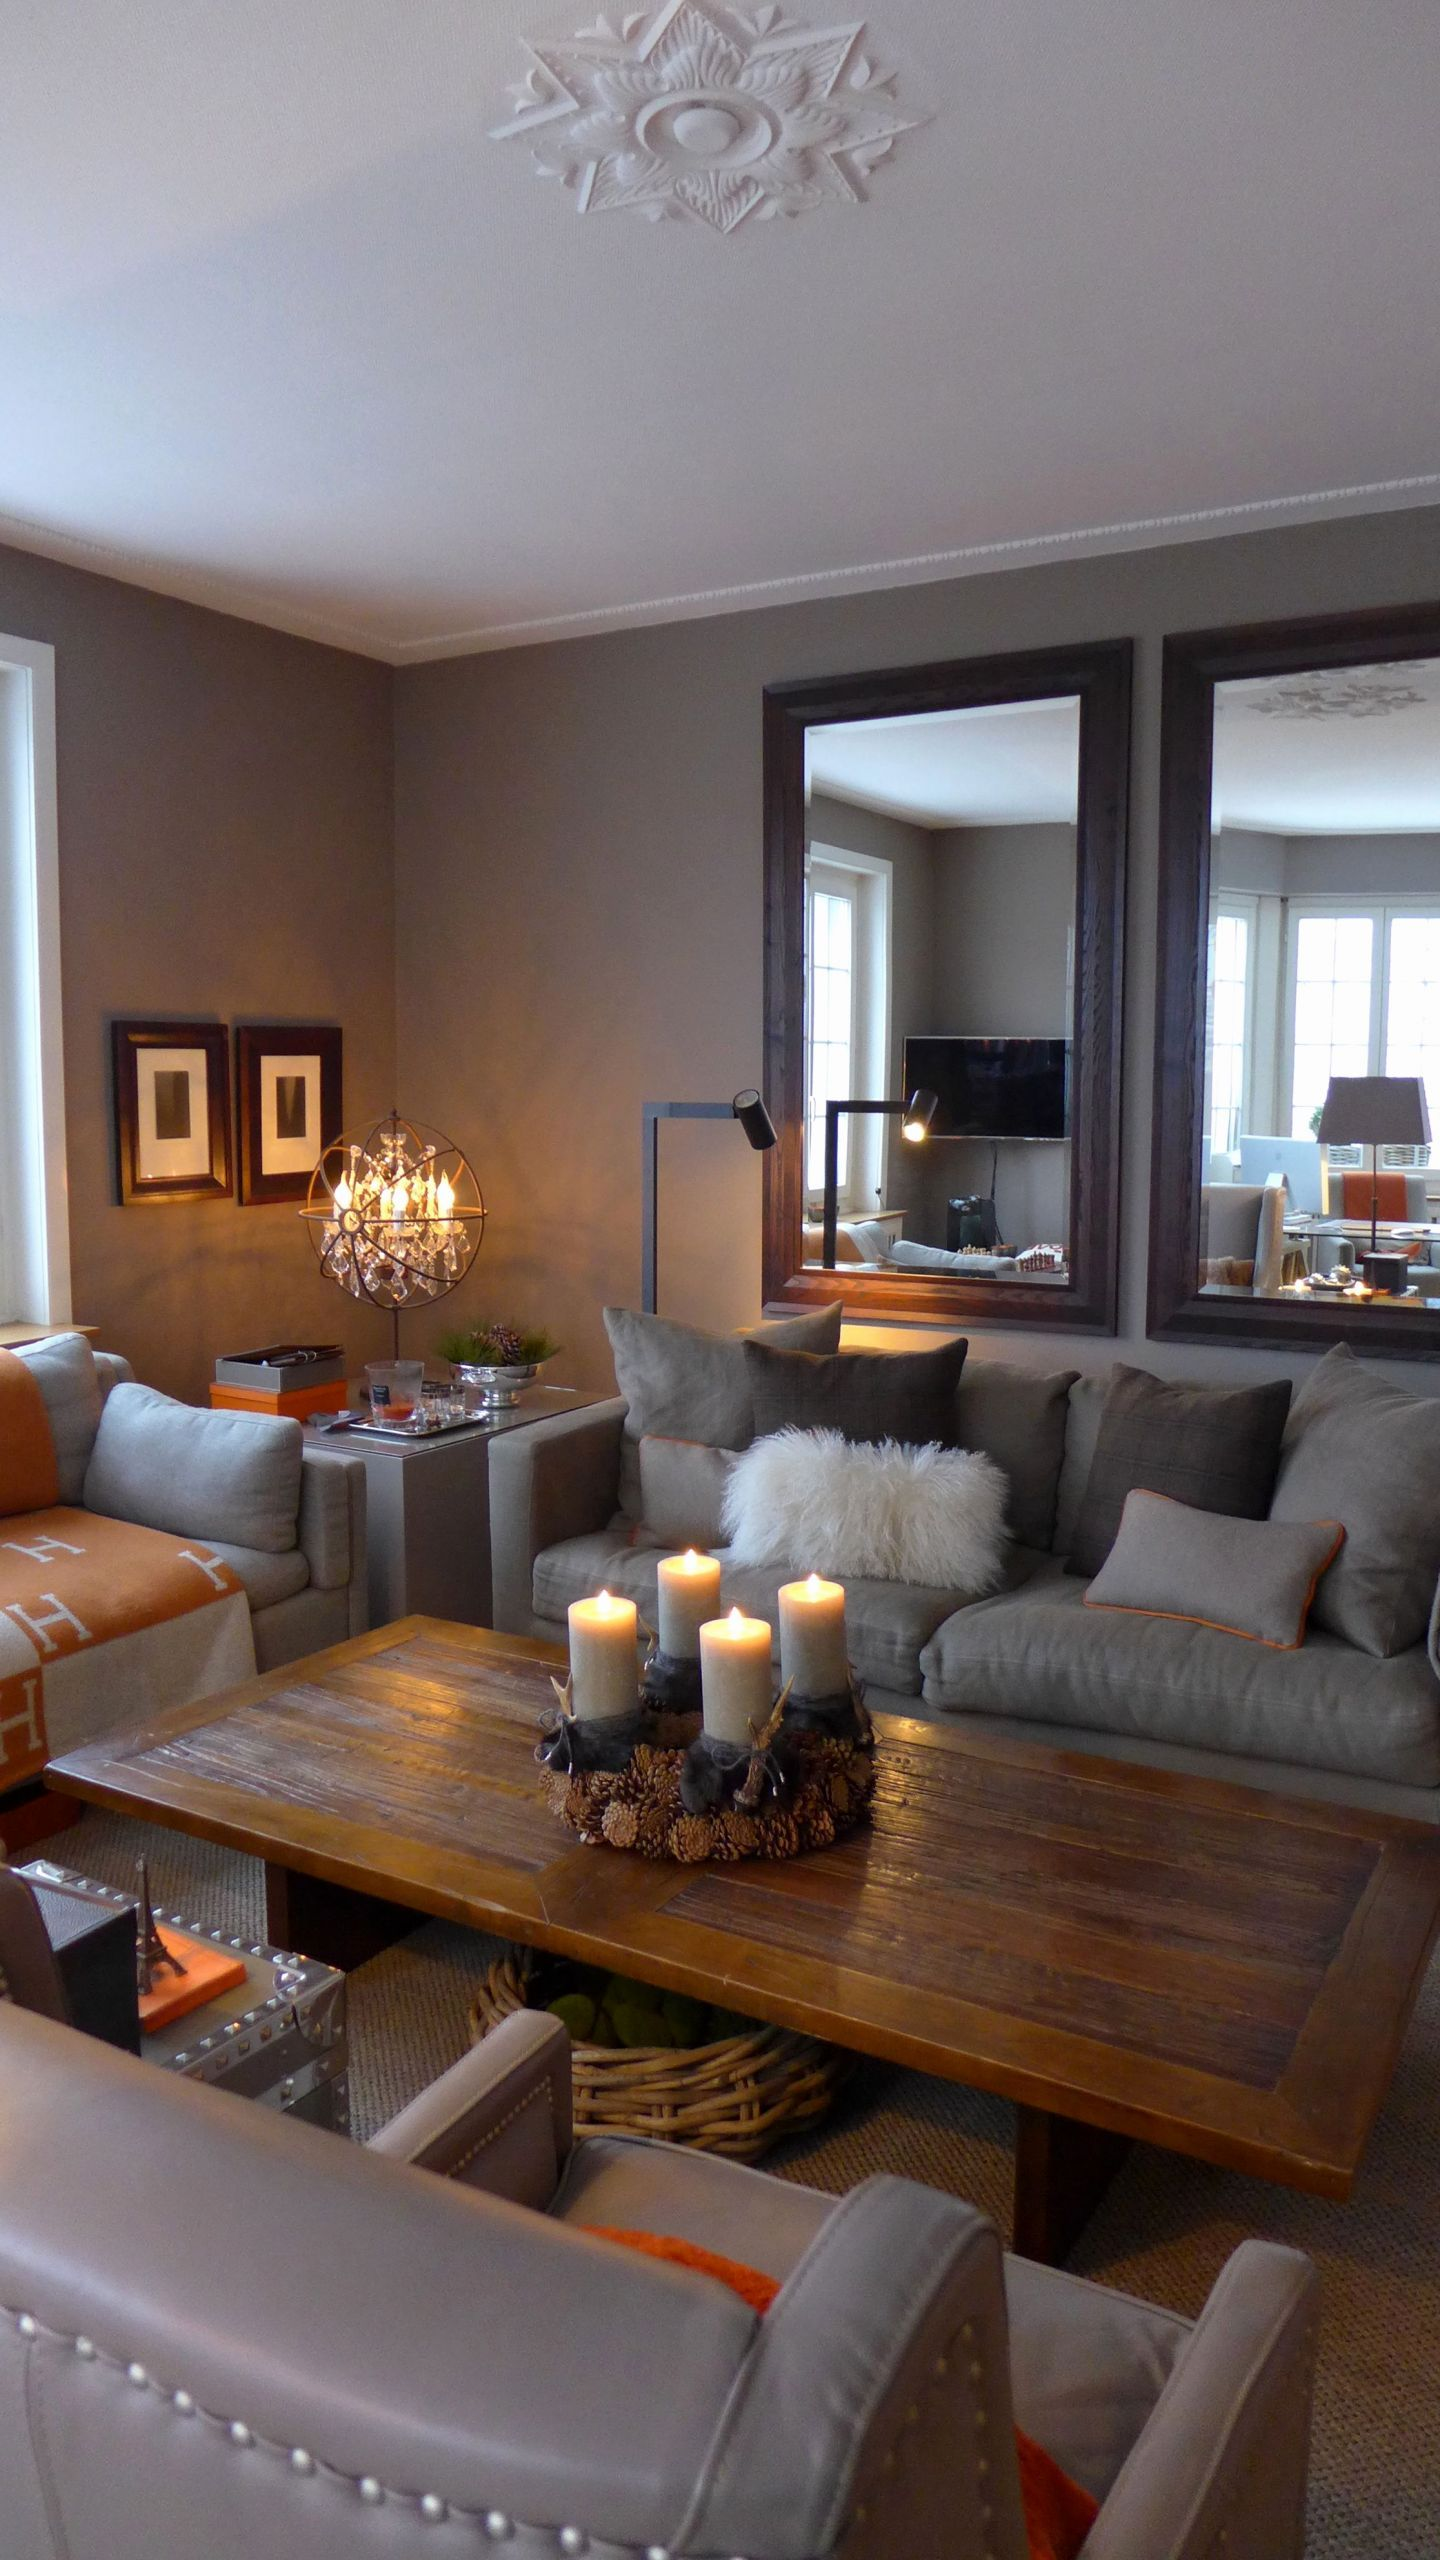 Idea For Living Room Wall Colors Best Of Warm And Cozy Living Room In Taupe With A Touch Of Orange Taupe Living Room Living Room Warm Living Room Orange Warm living room designs